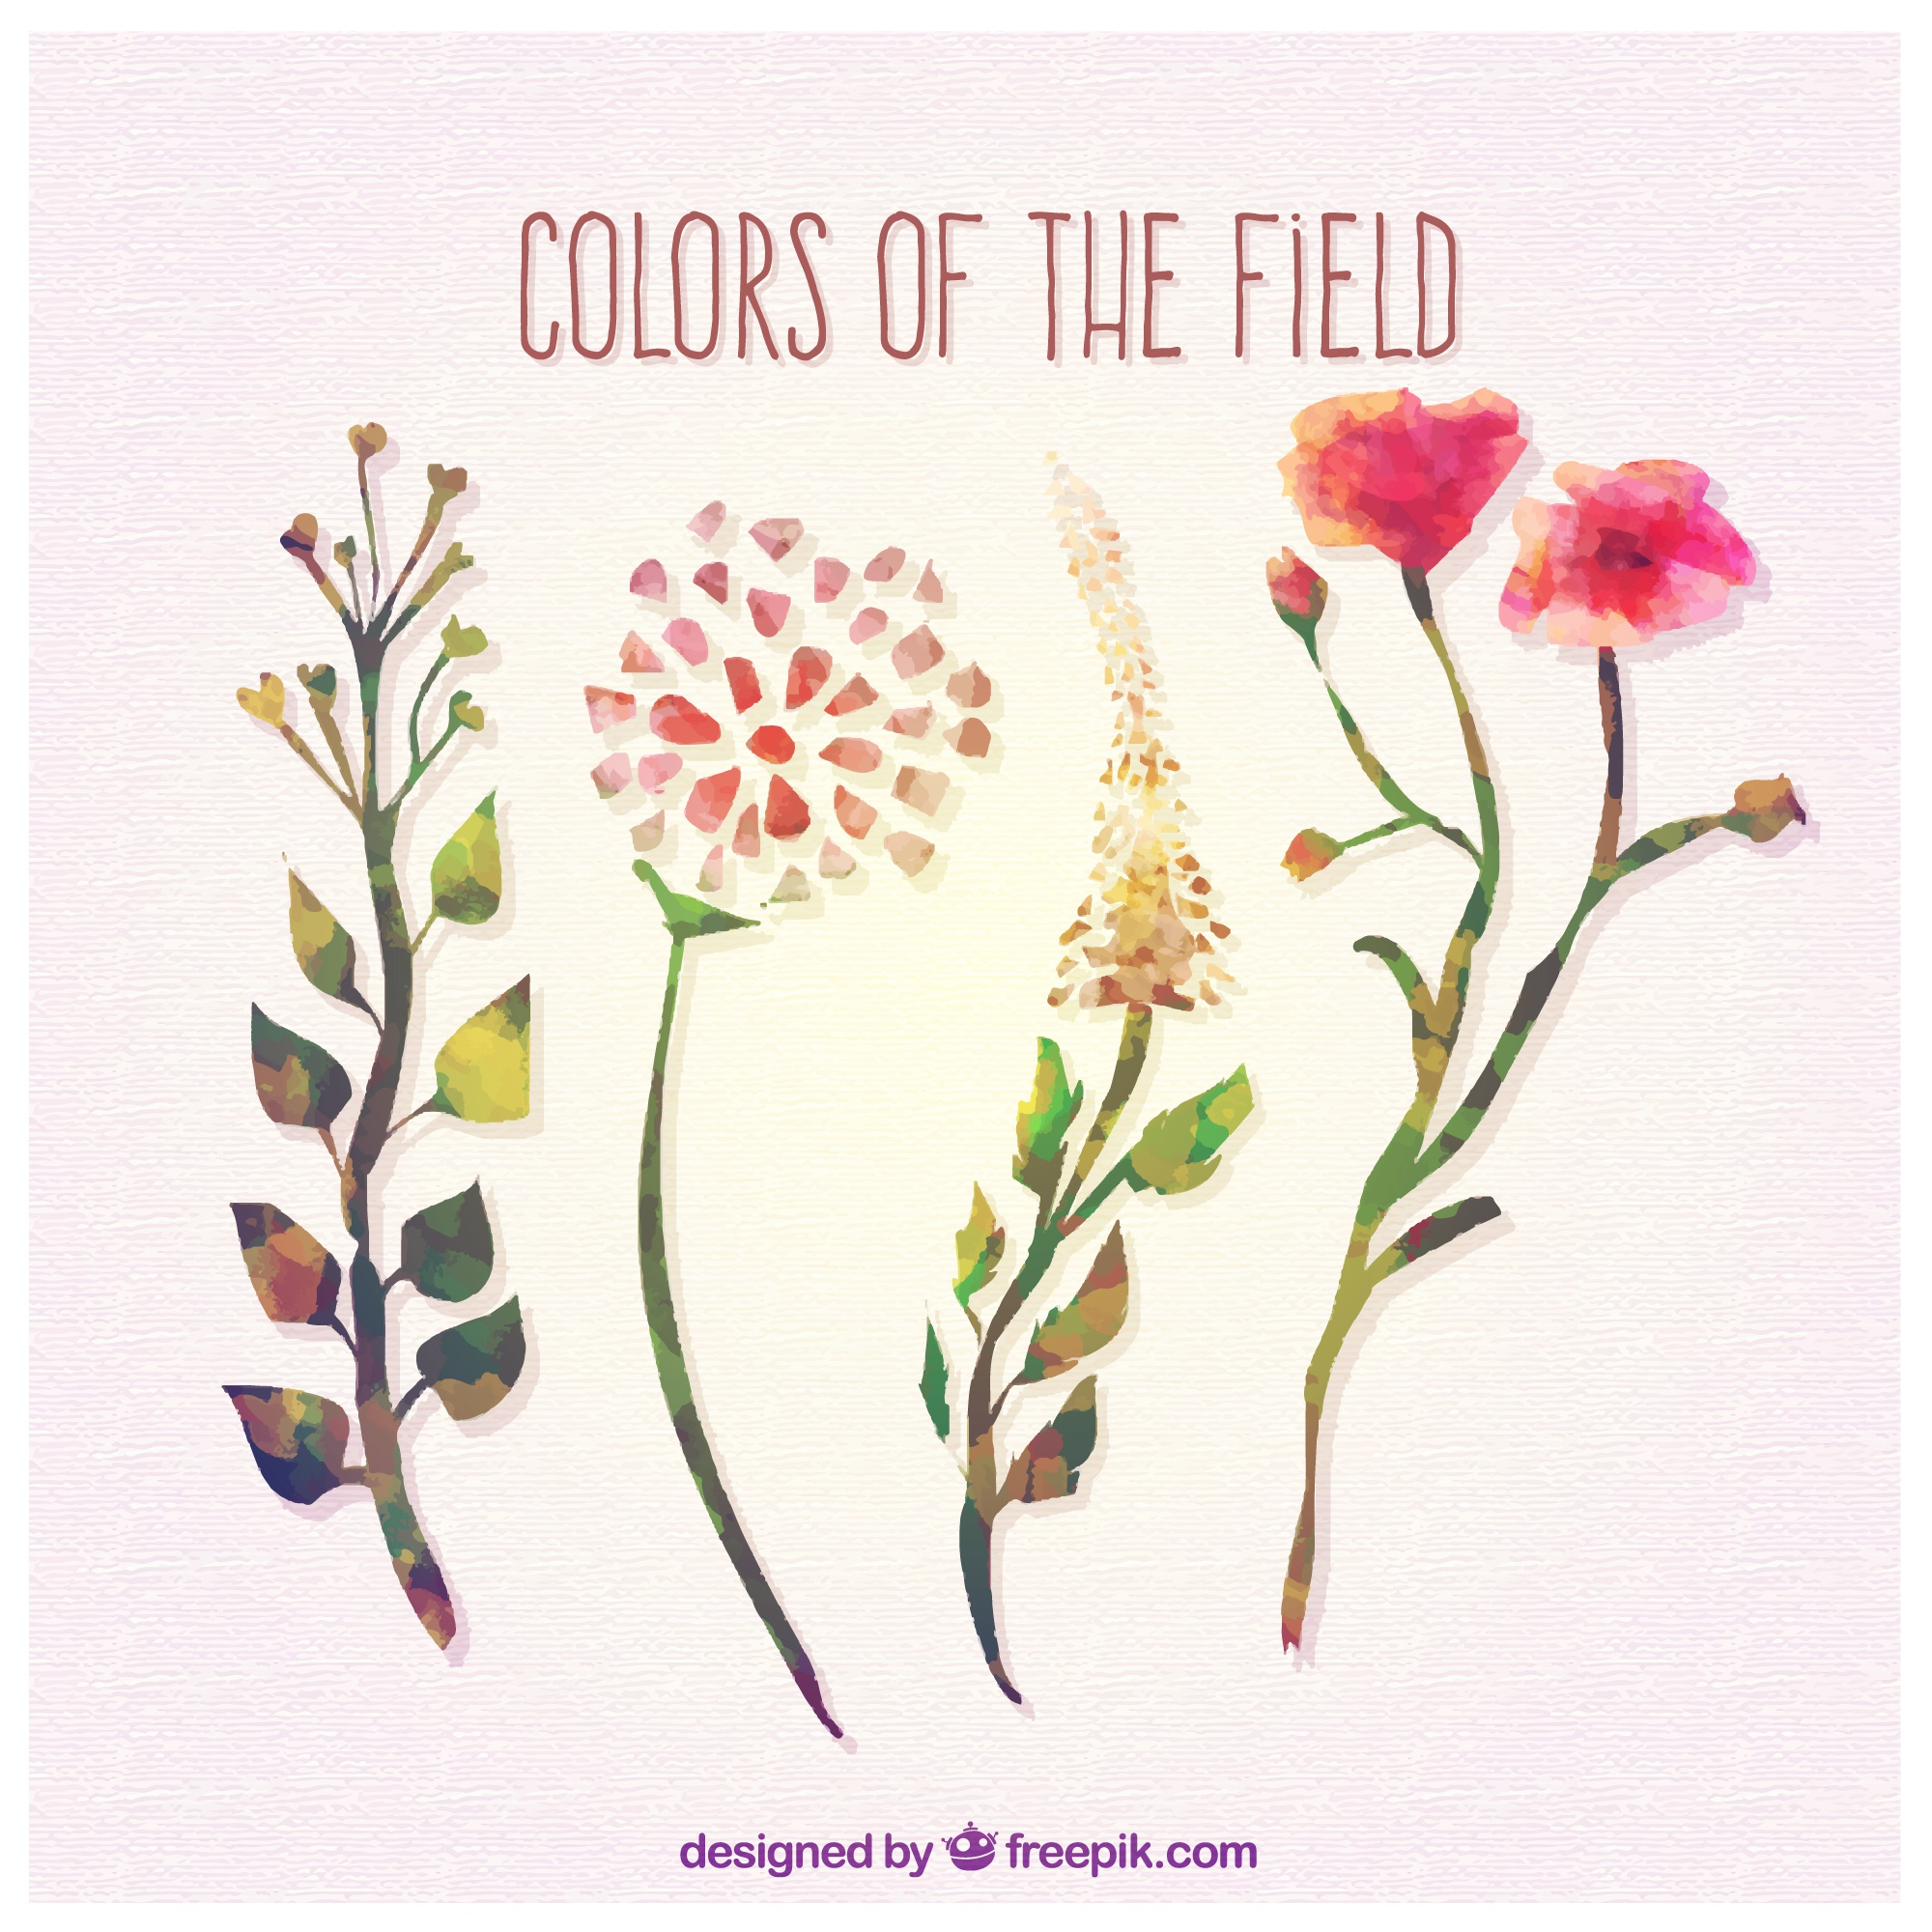 Colors of the field